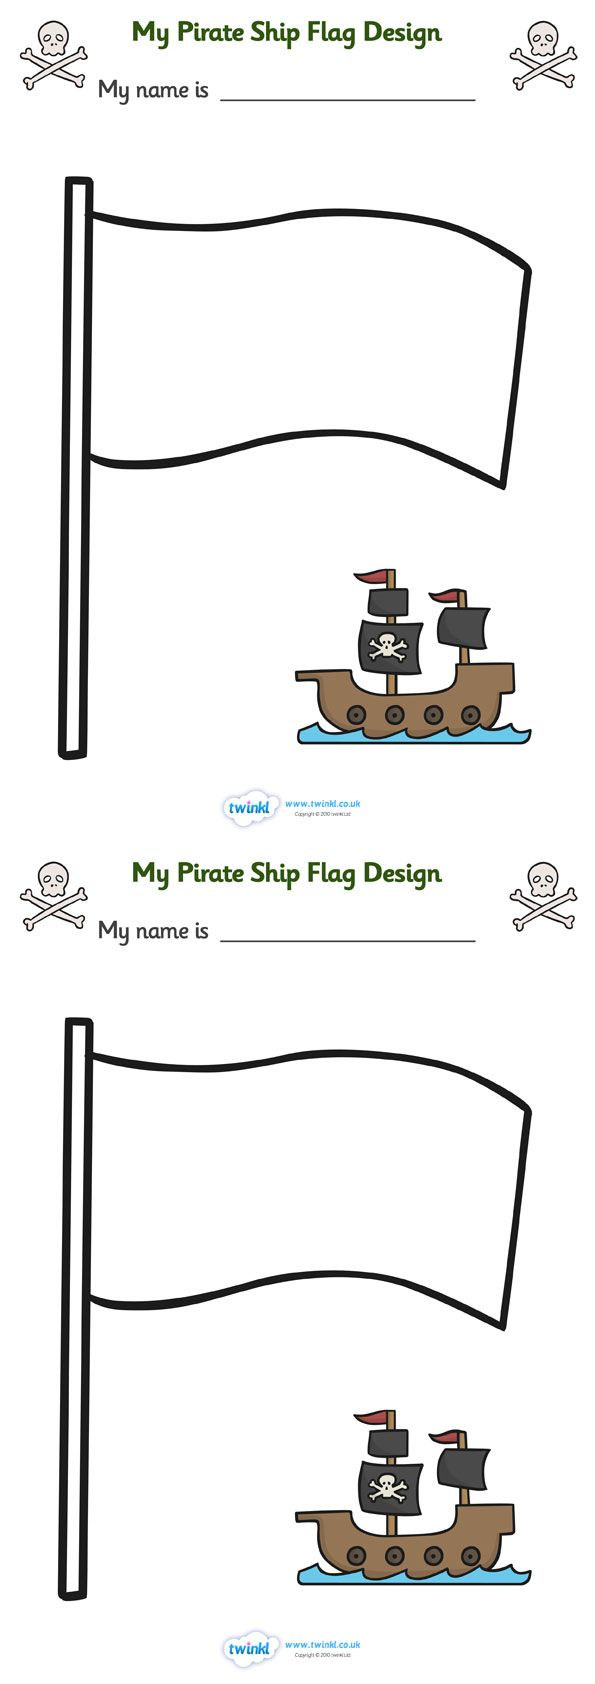 twinkl resources design your own ship flag worksheet classroom printables for pre